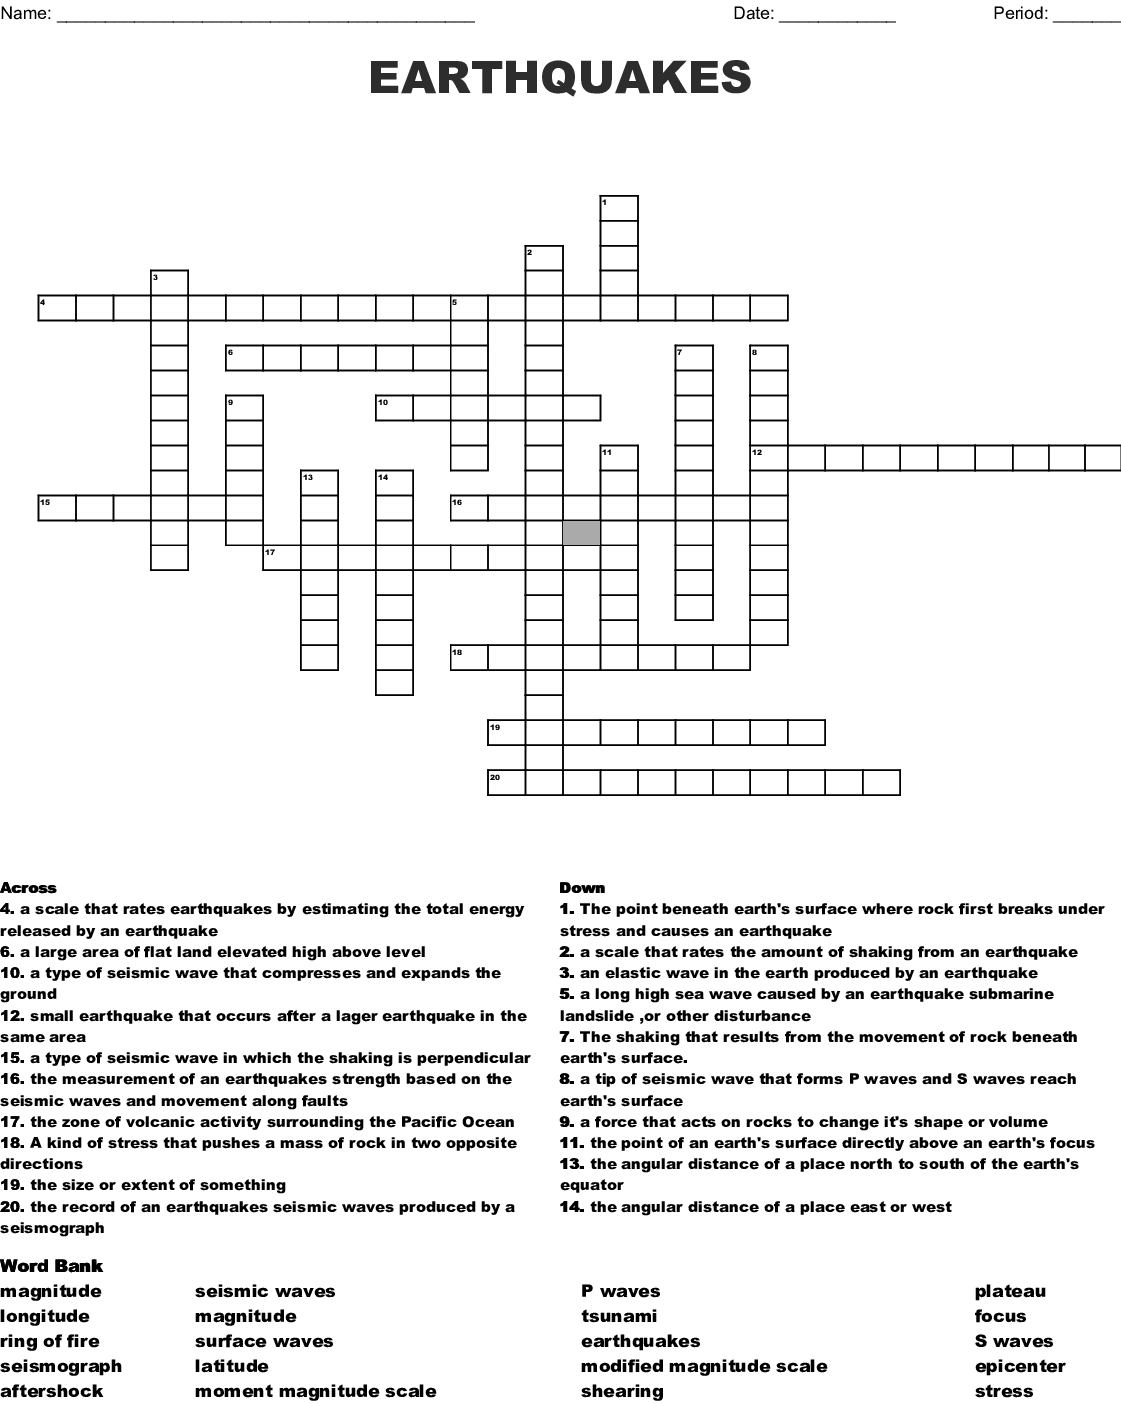 Earthquakes And Seismic Waves Crossword